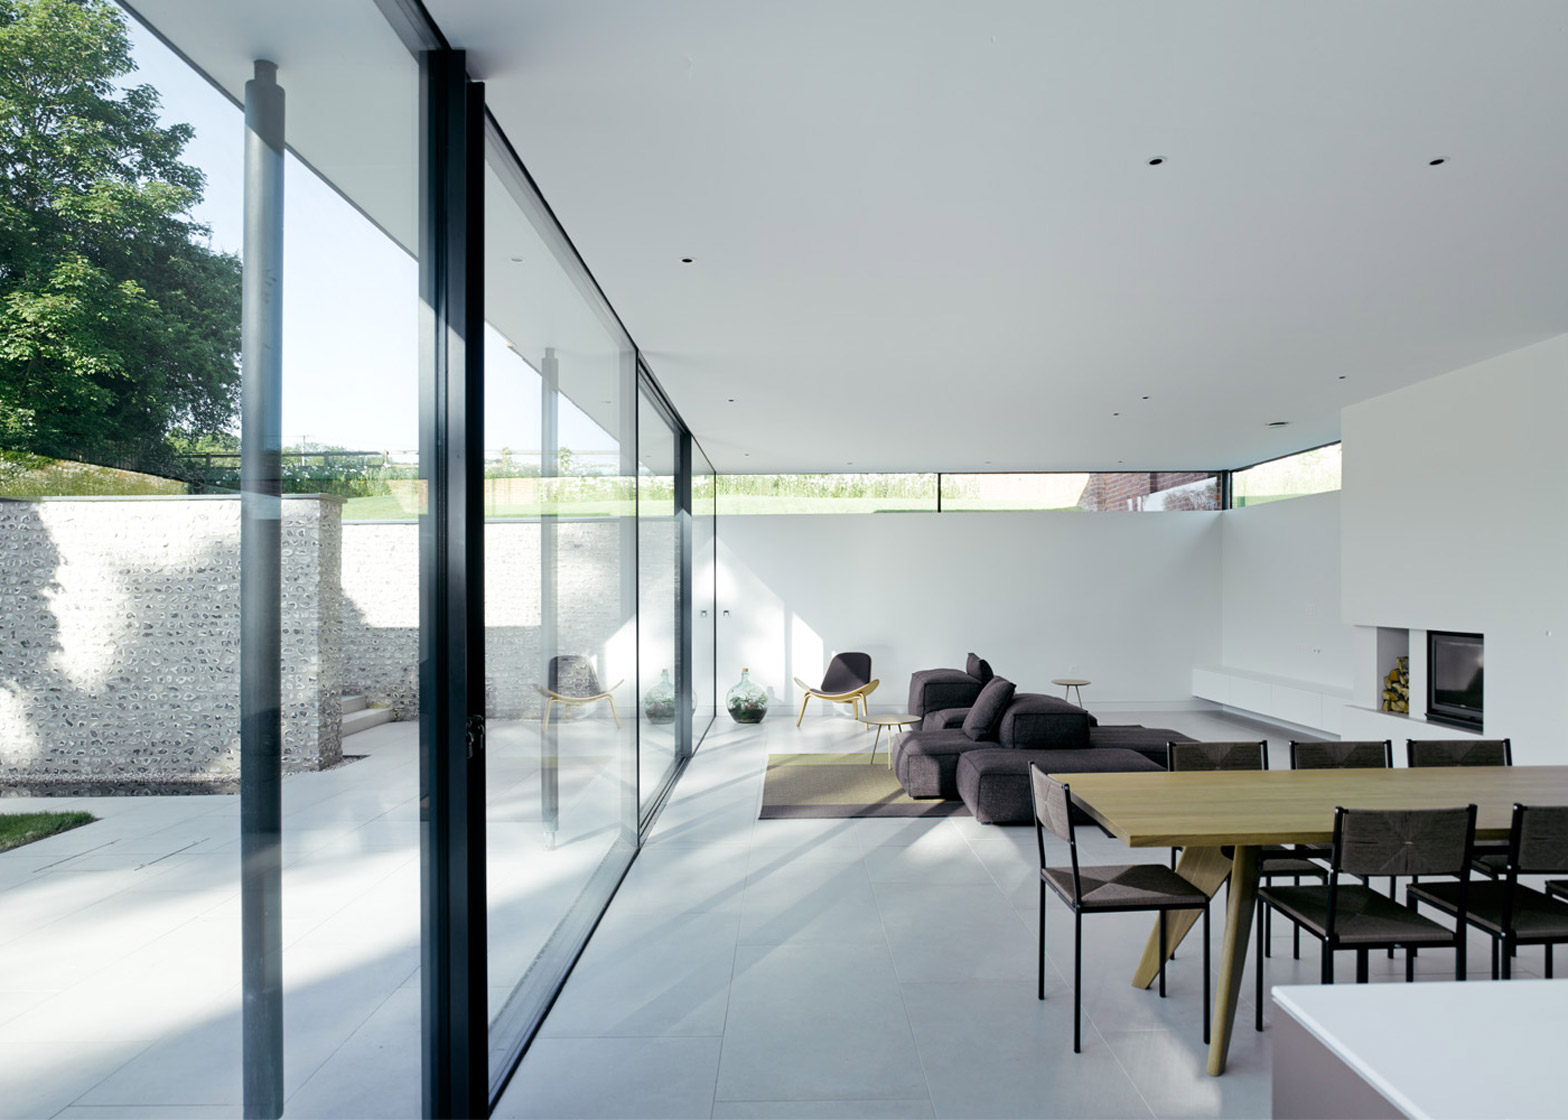 The Cheeran House by John Pardey Architects. Photograph by James Morries